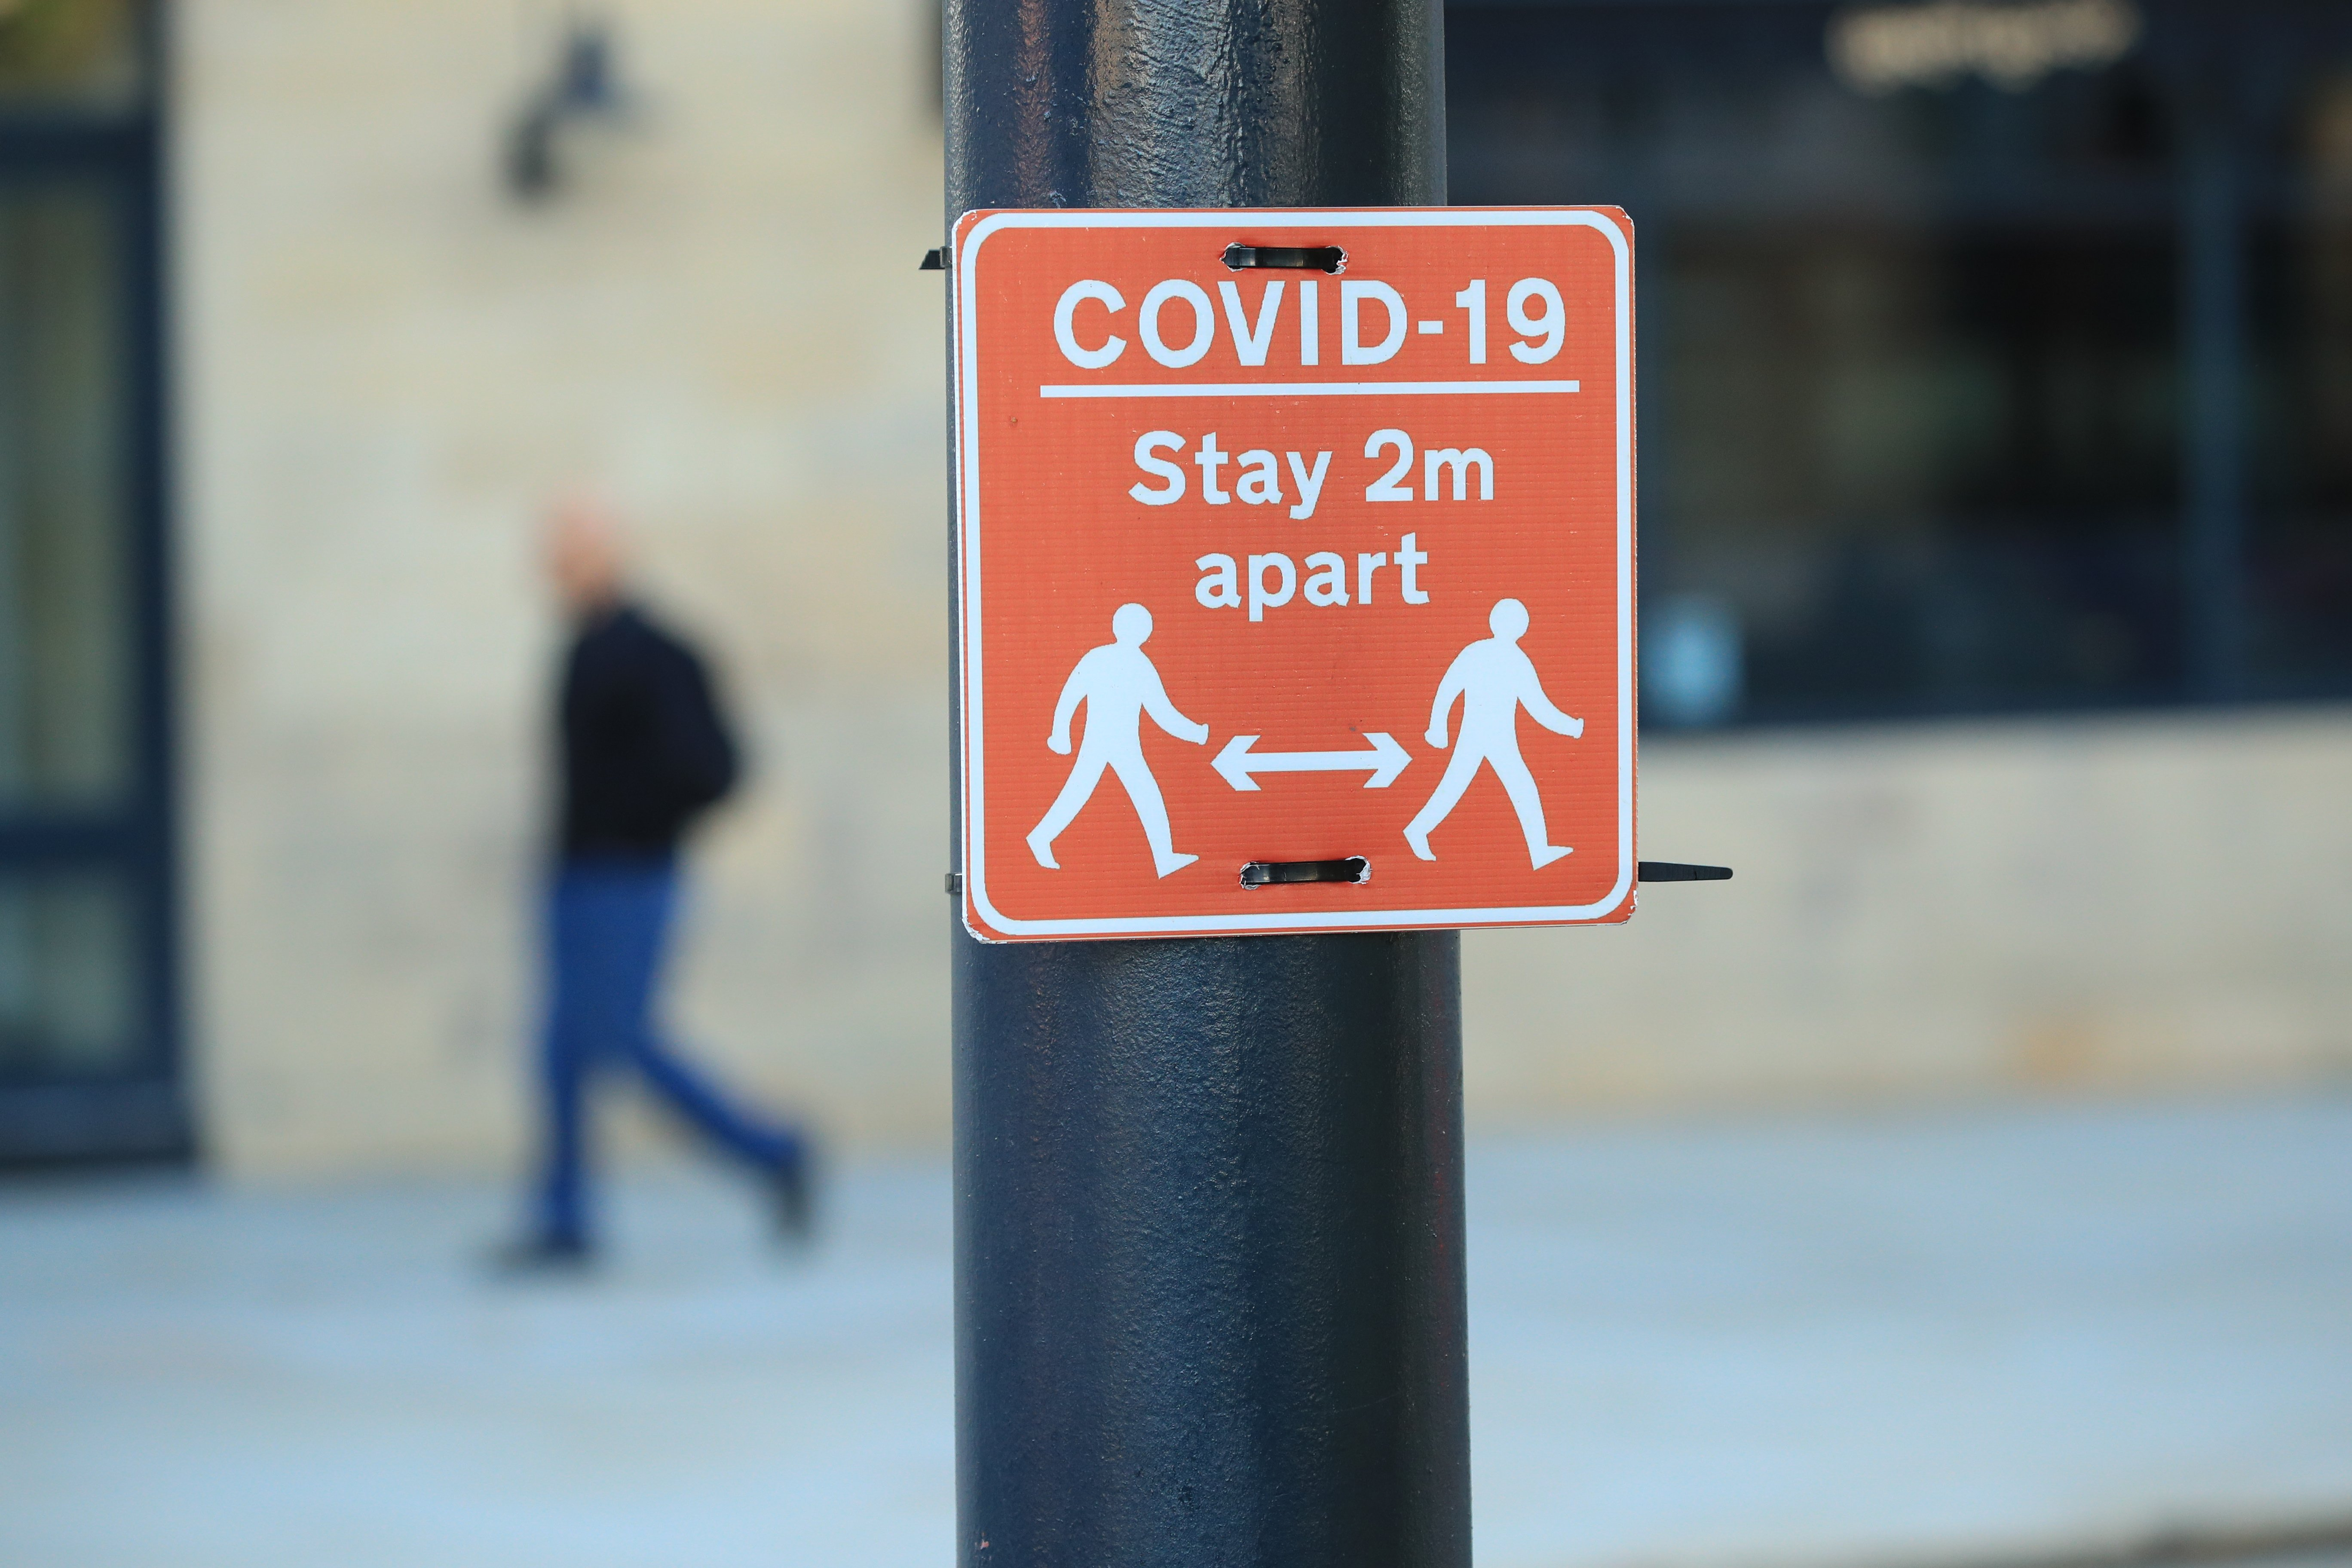 Coronavirus rules: What can you be fined for?